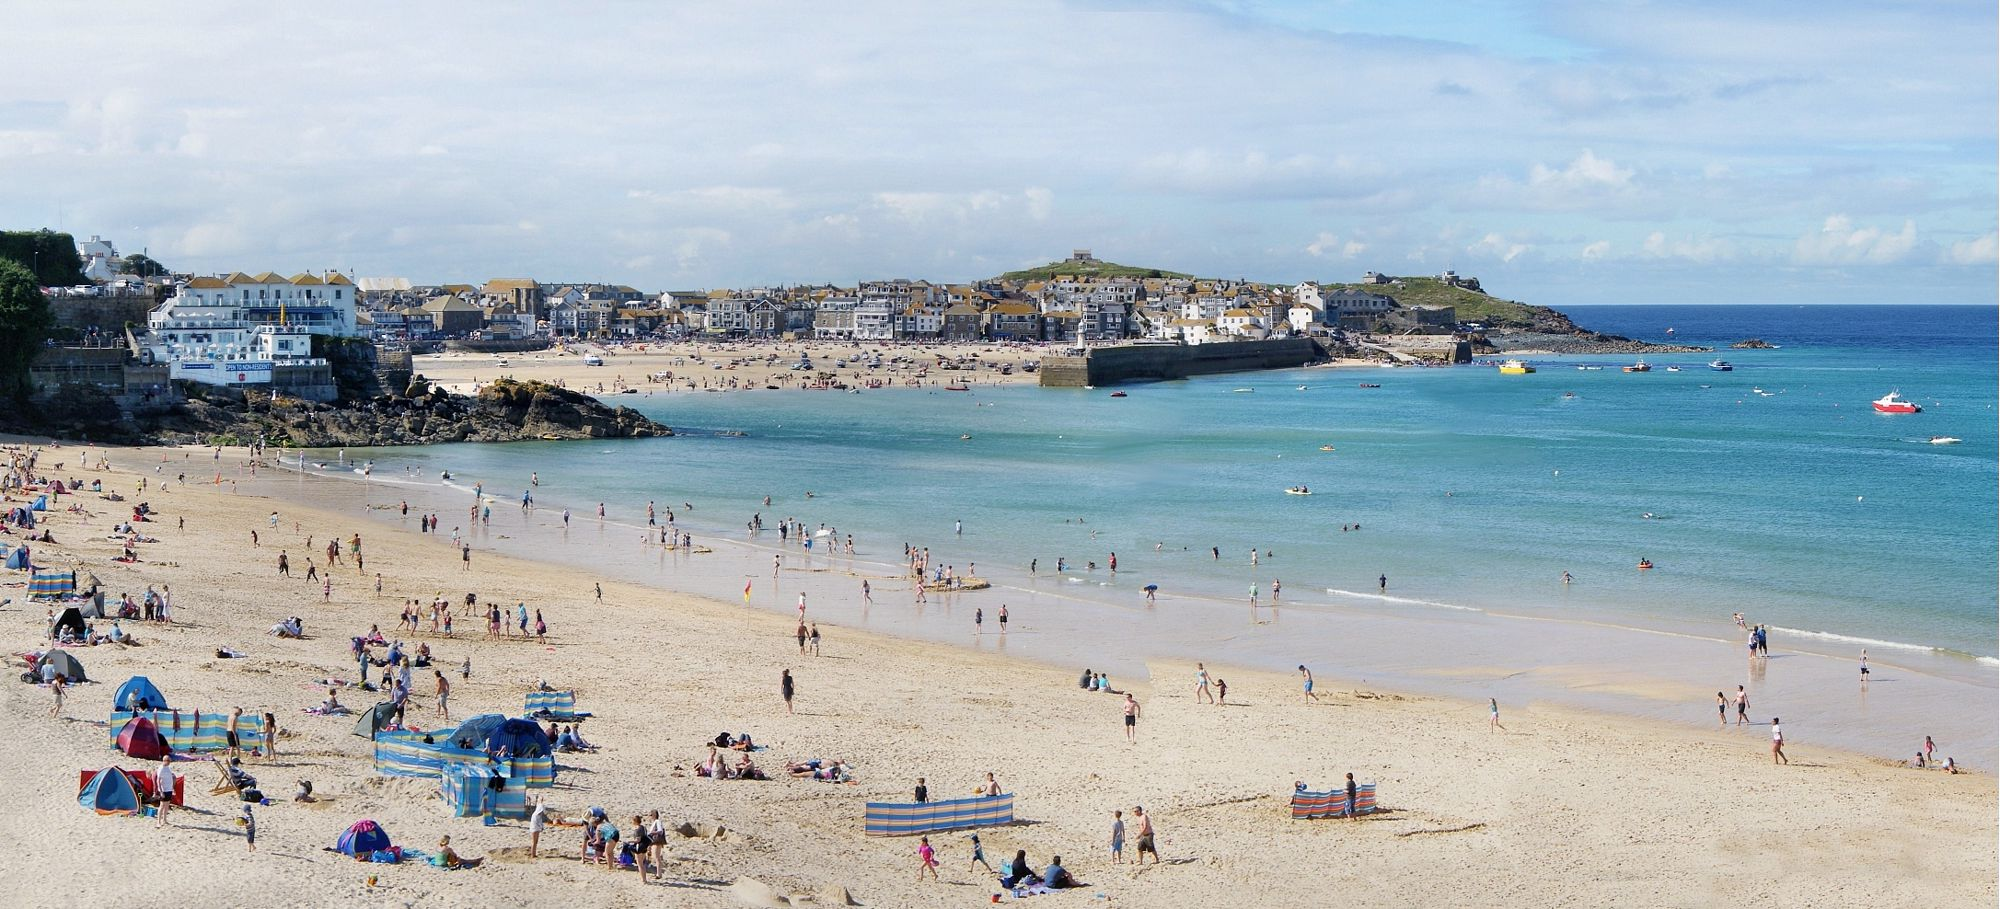 Hotels, B&Bs & Self-Catering in St Ives